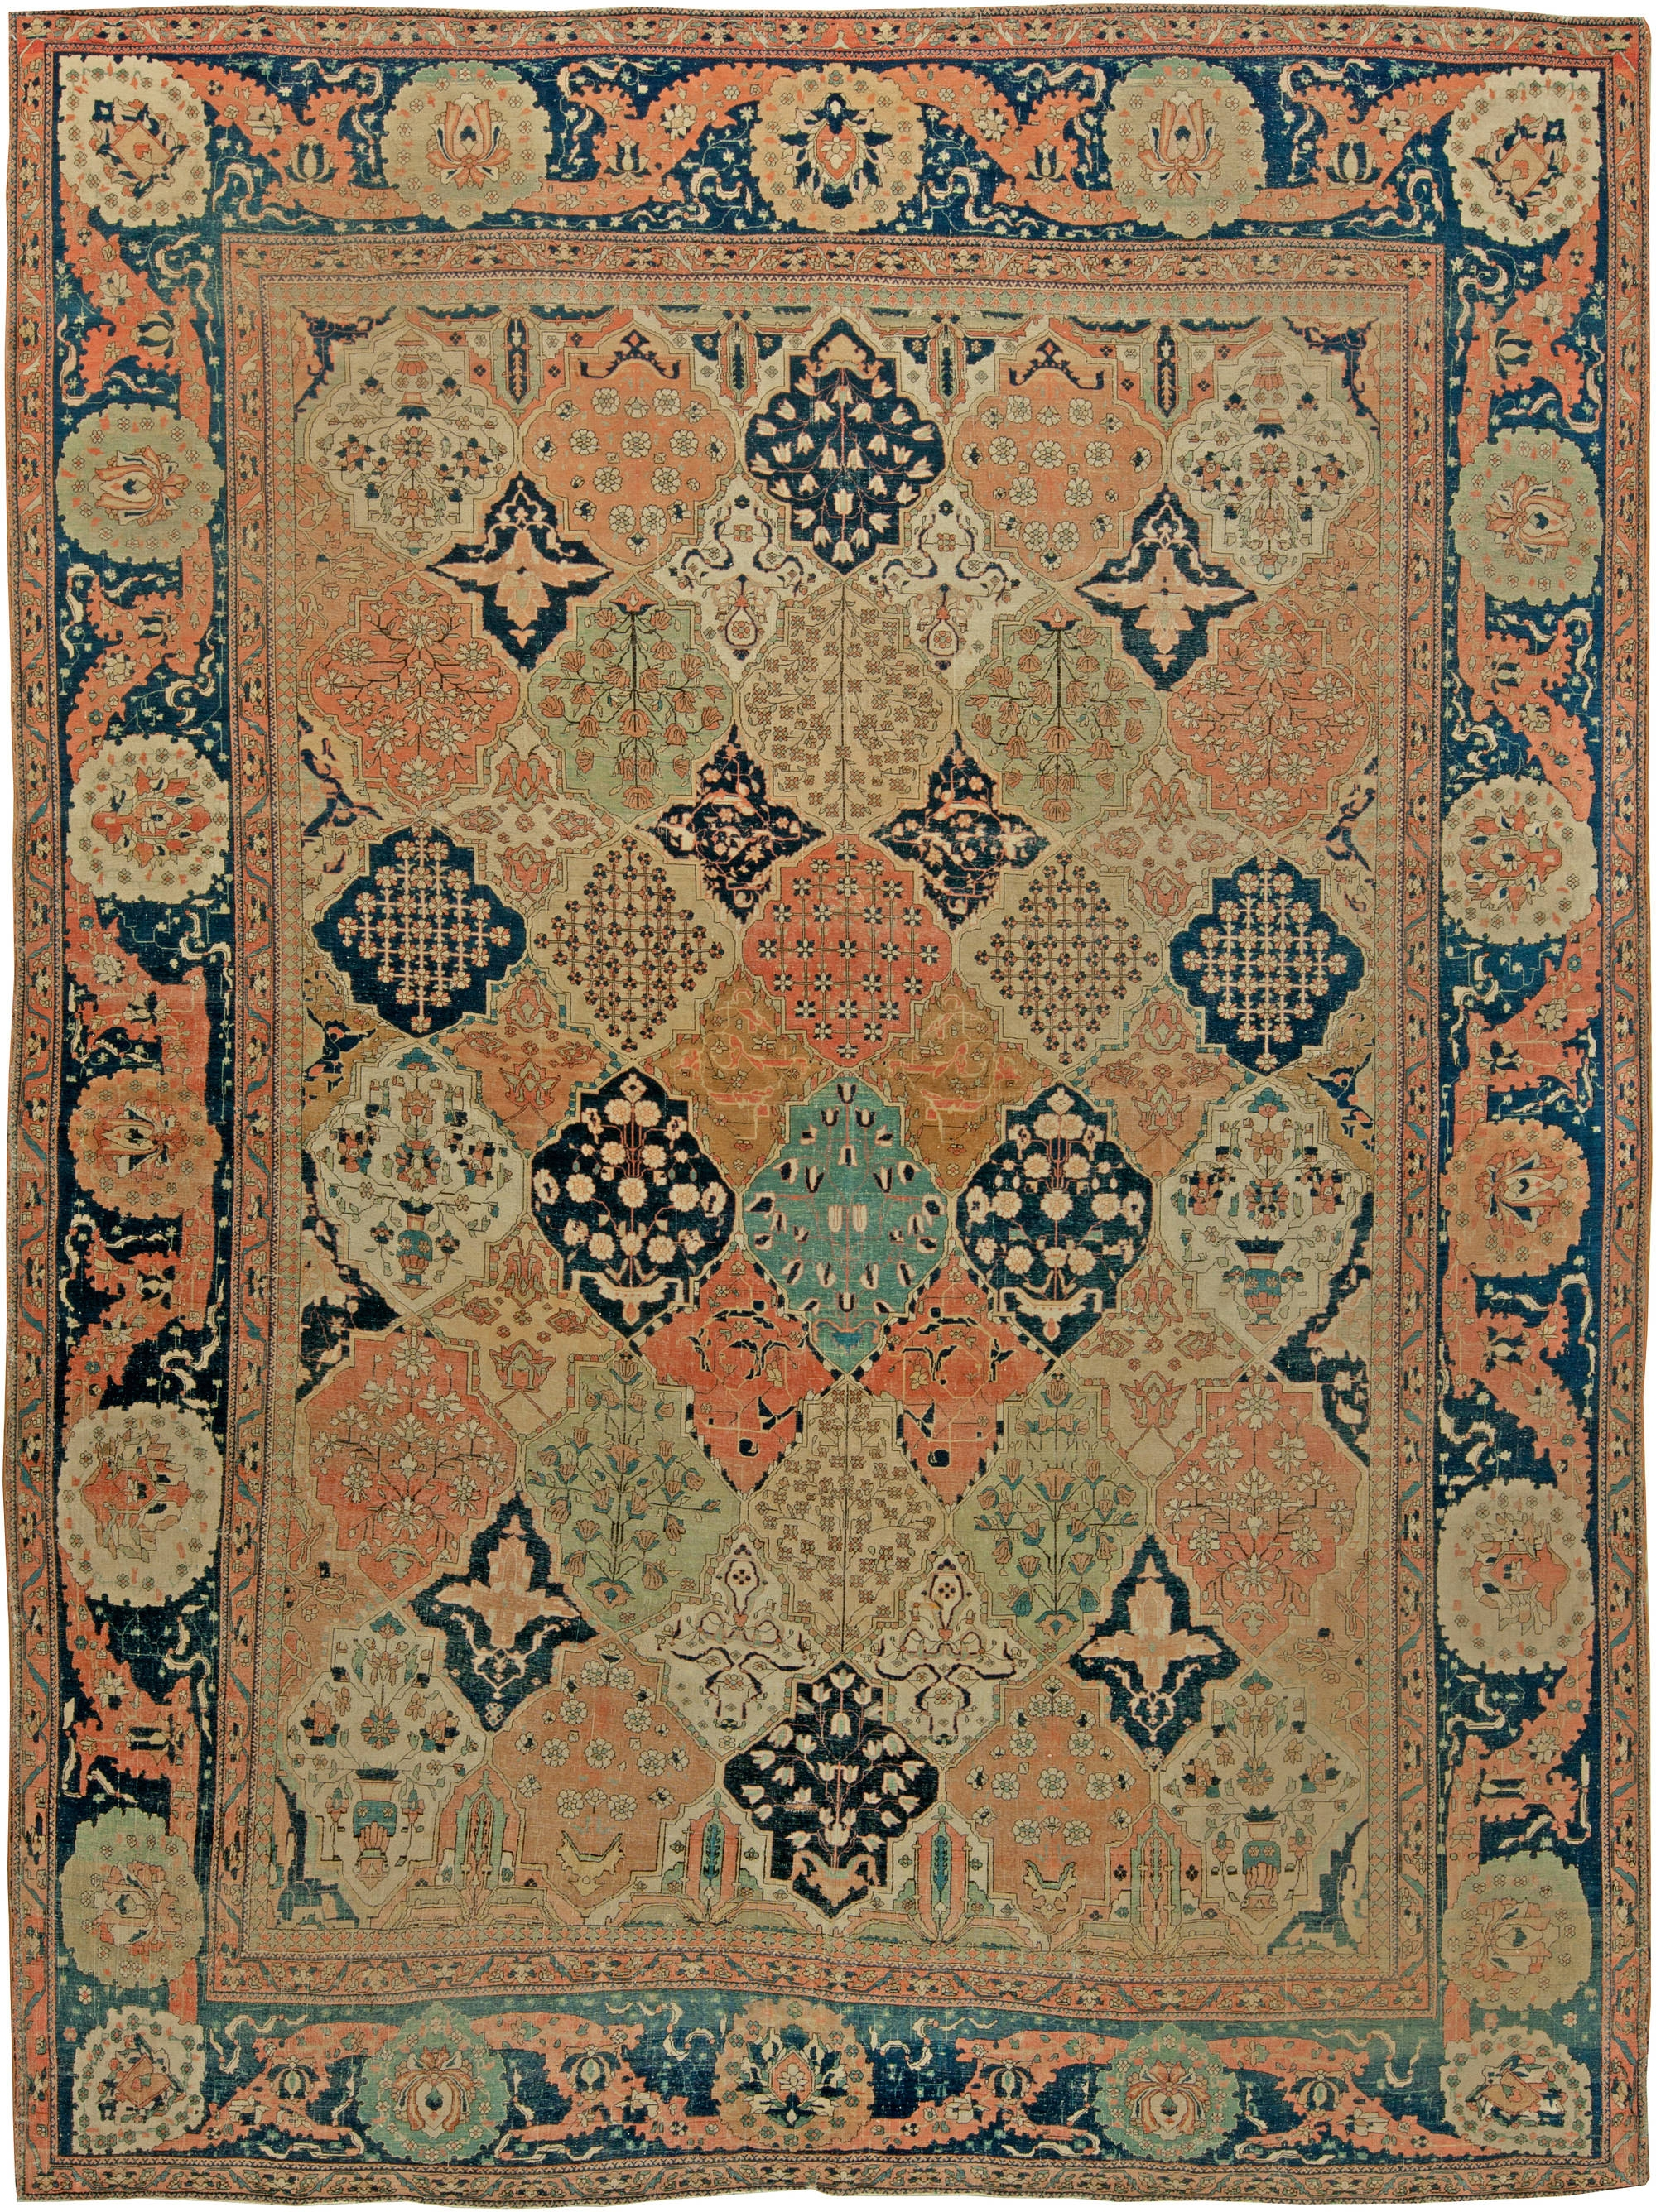 Antique Rugs From Doris Leslie Blau New York Antique Carpets Intended For Carpet Rugs (Image 5 of 15)